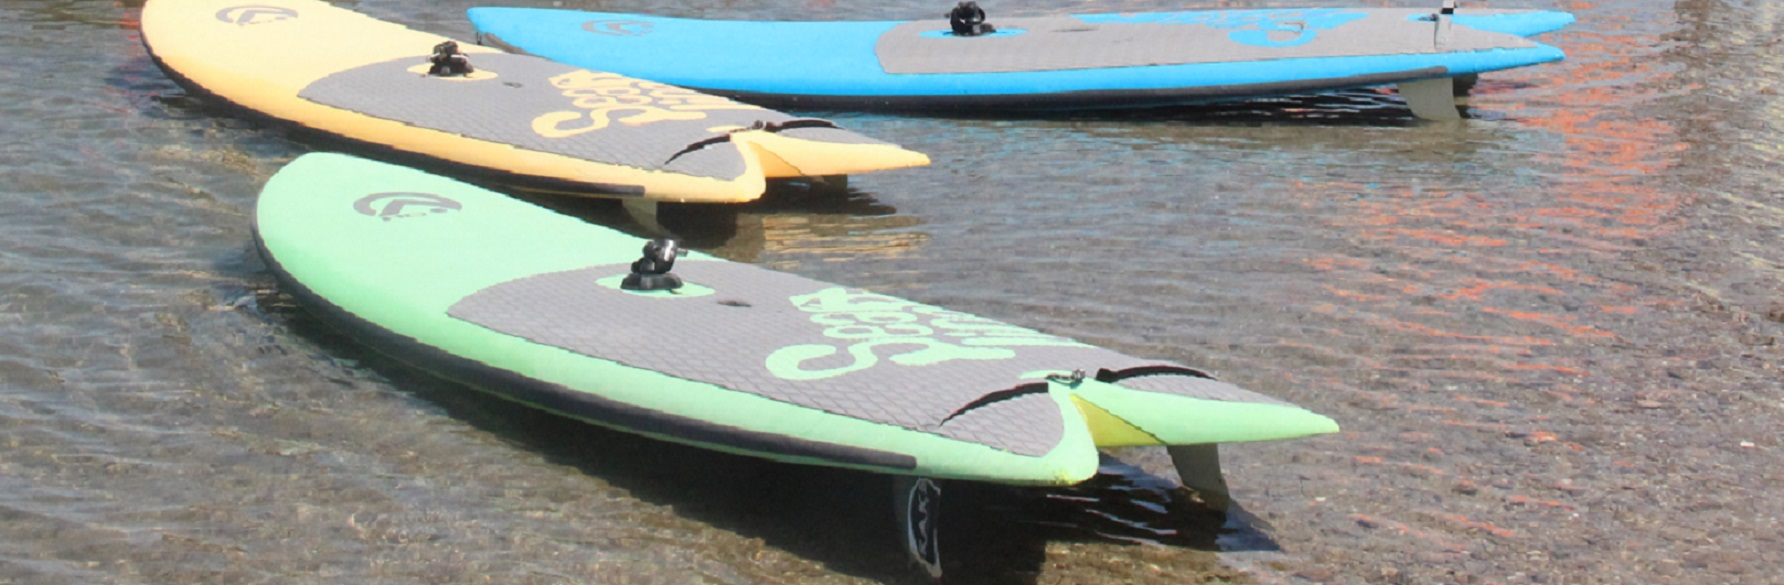 windsurf  and Sealion from AHD range for sale at Tramontana